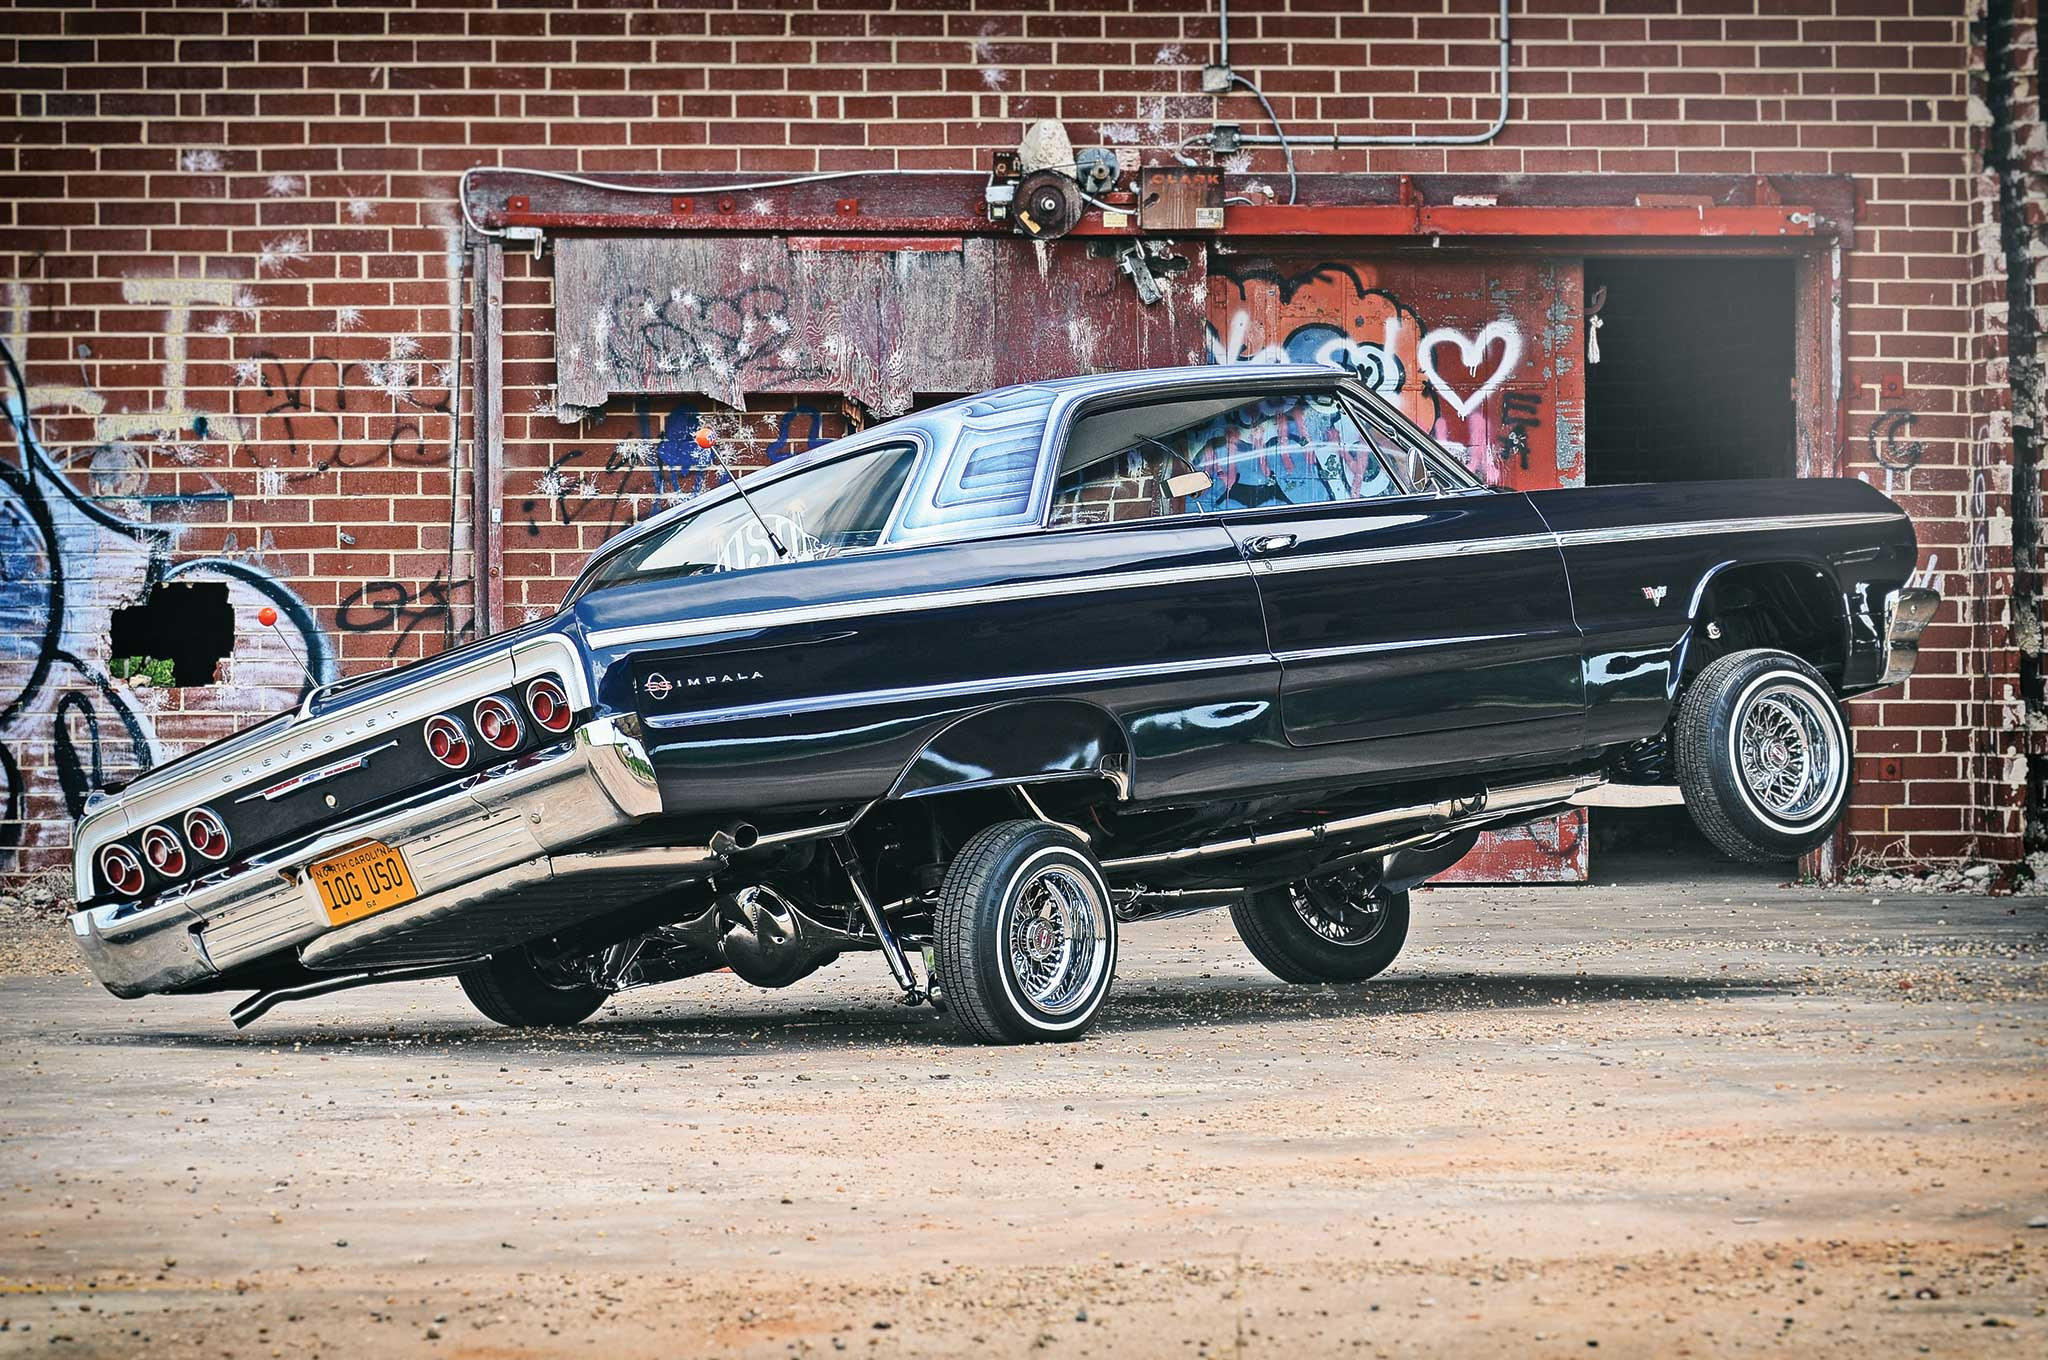 Chevy Truck Wheels >> 1964 Chevrolet Impala Super Sport - Motivation